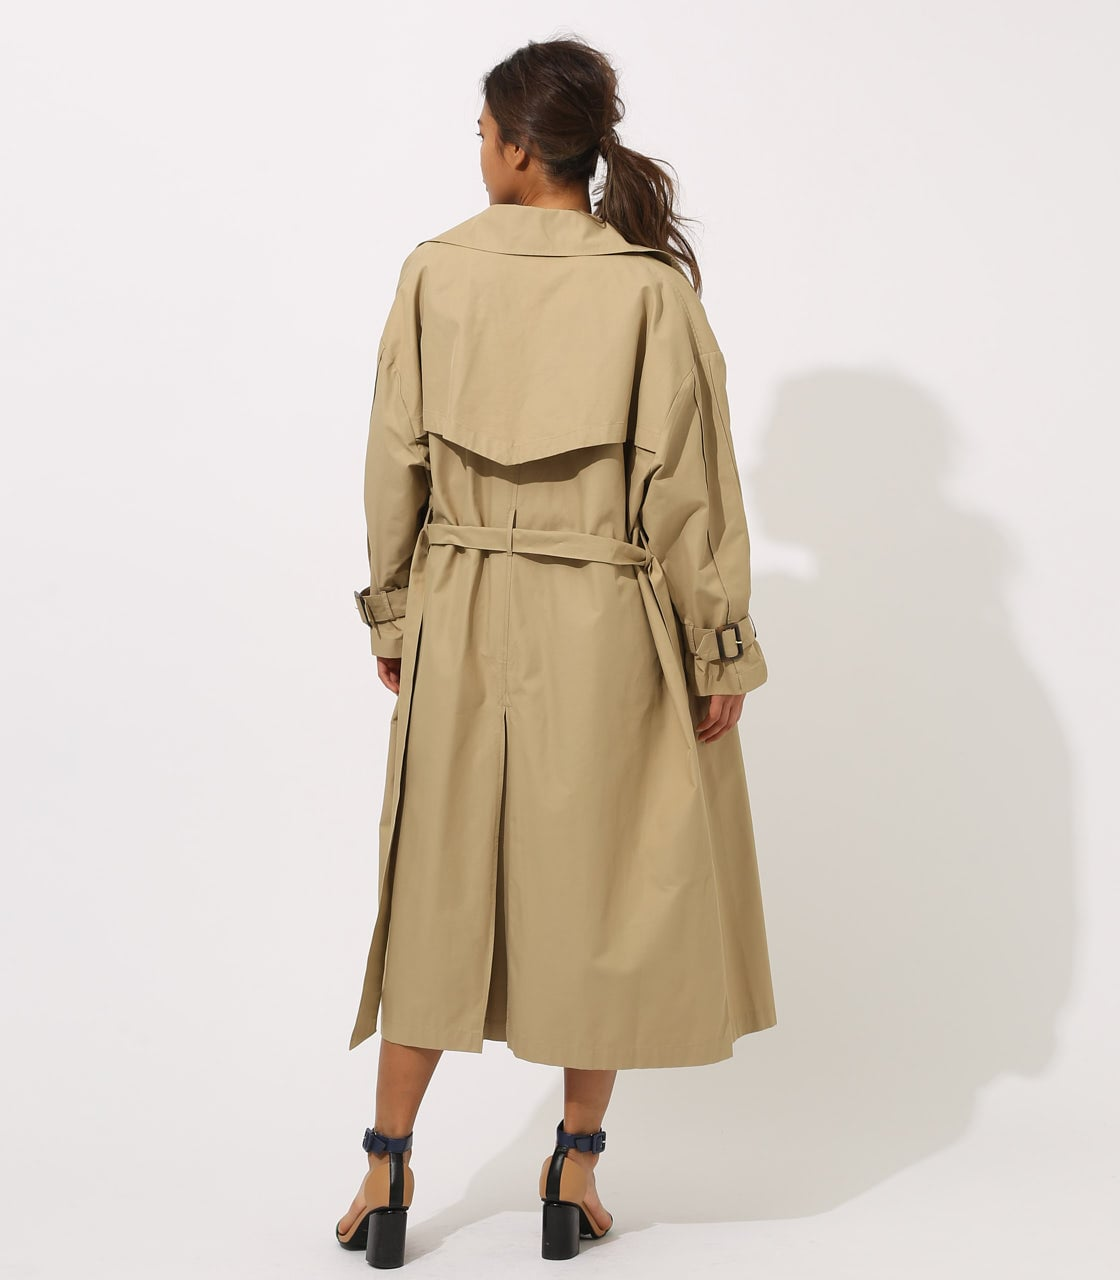 【AZUL BY MOUSSY】VOLUME TRENCH COAT 詳細画像 BEG 7